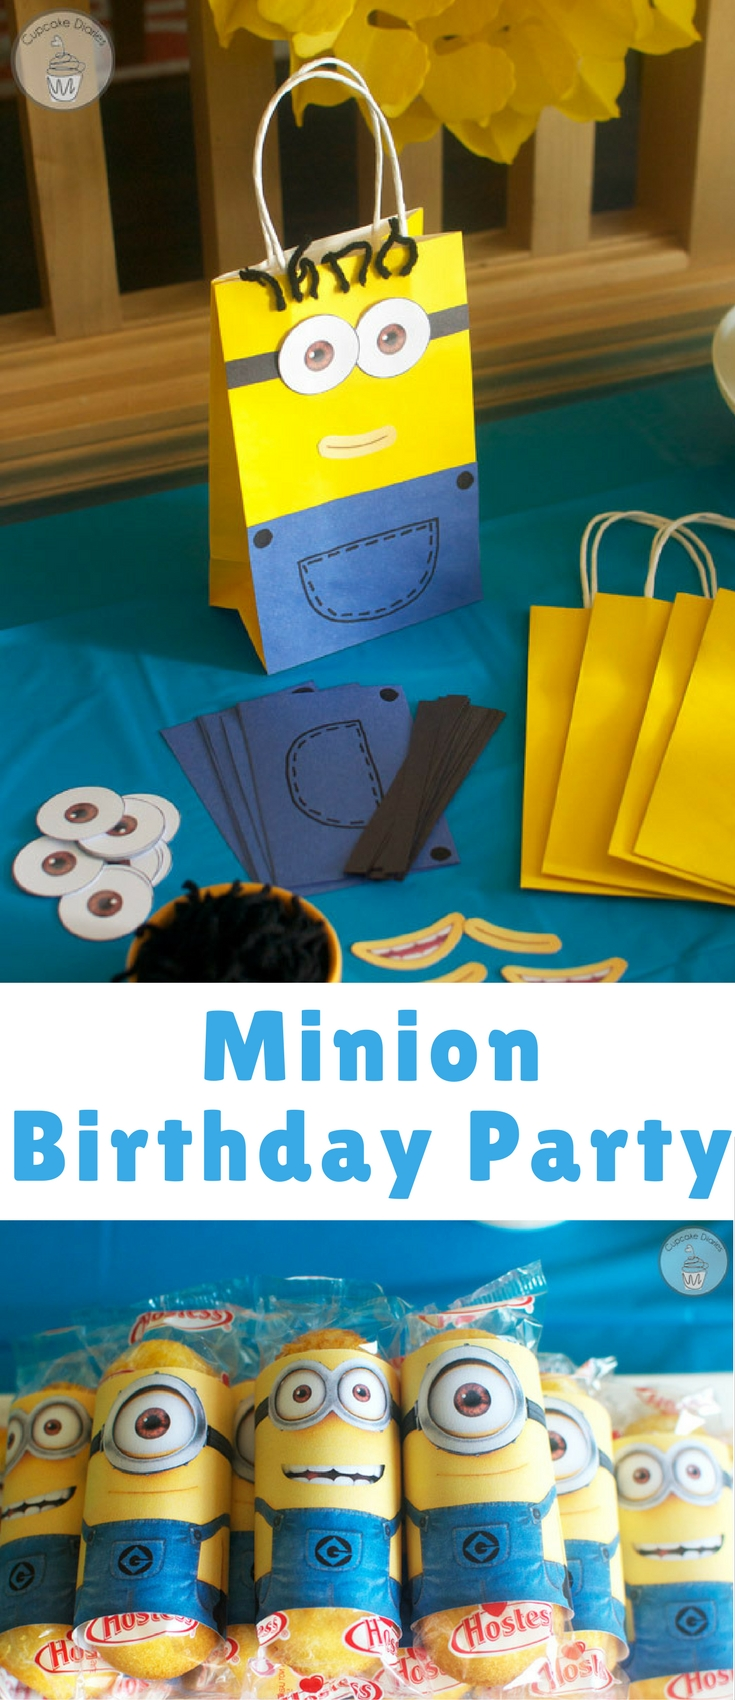 My son turned five this year and got to have his very first friend party. He was so excited and immediately requested a minion theme for his party. And perfect timing with the movie Minions coming out next month! Minions are pretty much the best.